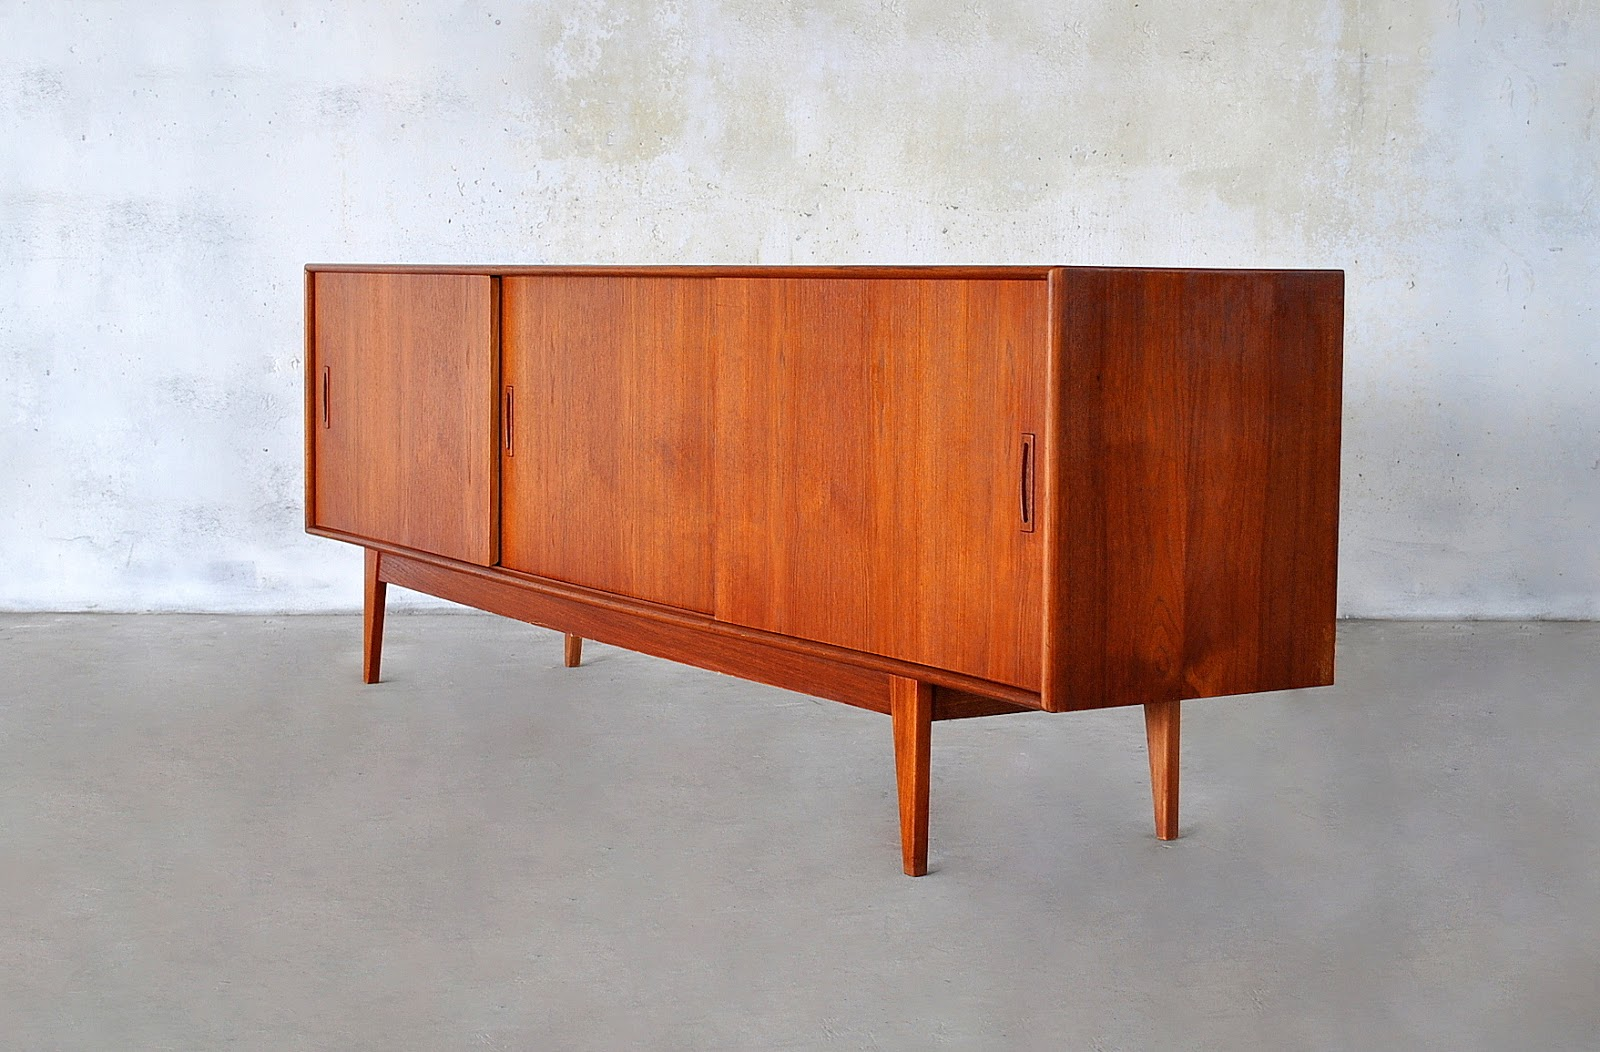 Select Modern Danish Modern Teak Credenza Bar Sideboard